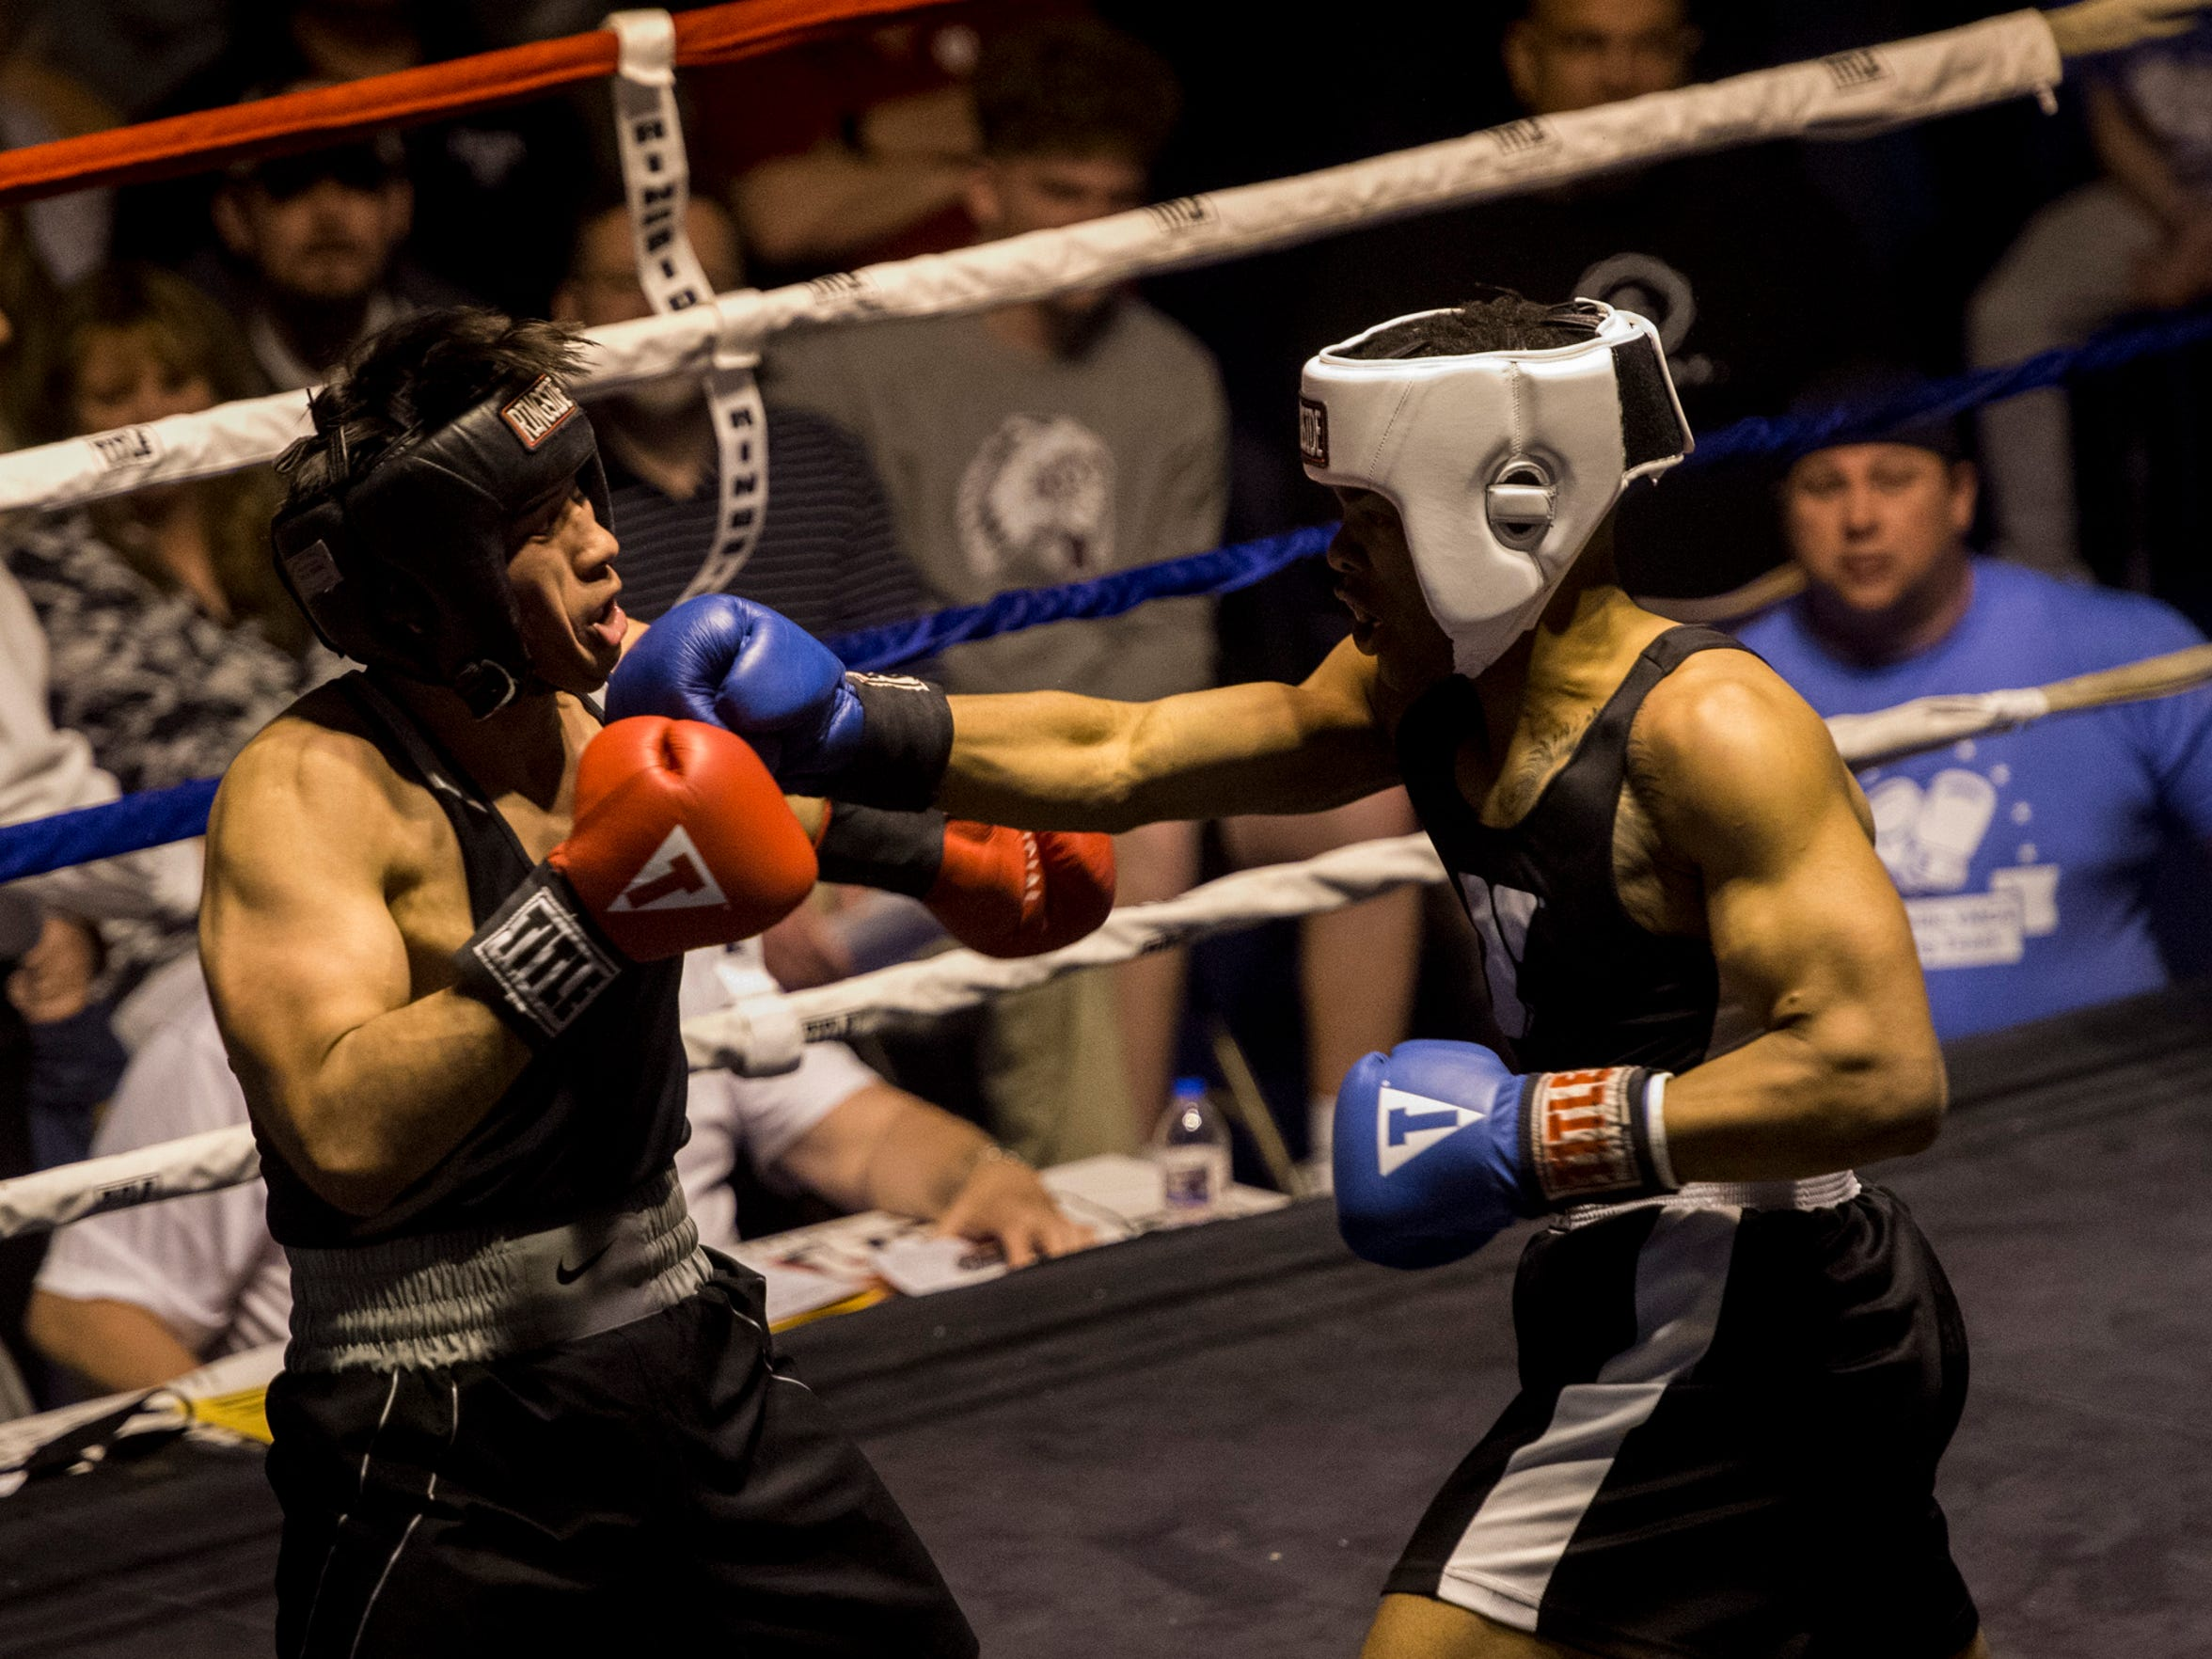 Raymon Henry punches Yorman Guerrero Moctezuma during the Indiana State Golden Gloves championship at the Tyndall Armory in Indianapolis on Thursday, April 26, 2018. Henry fighting through a torn back muscle injury lost the fight but advanced to the national tournament because Moctezuma was unable to go.